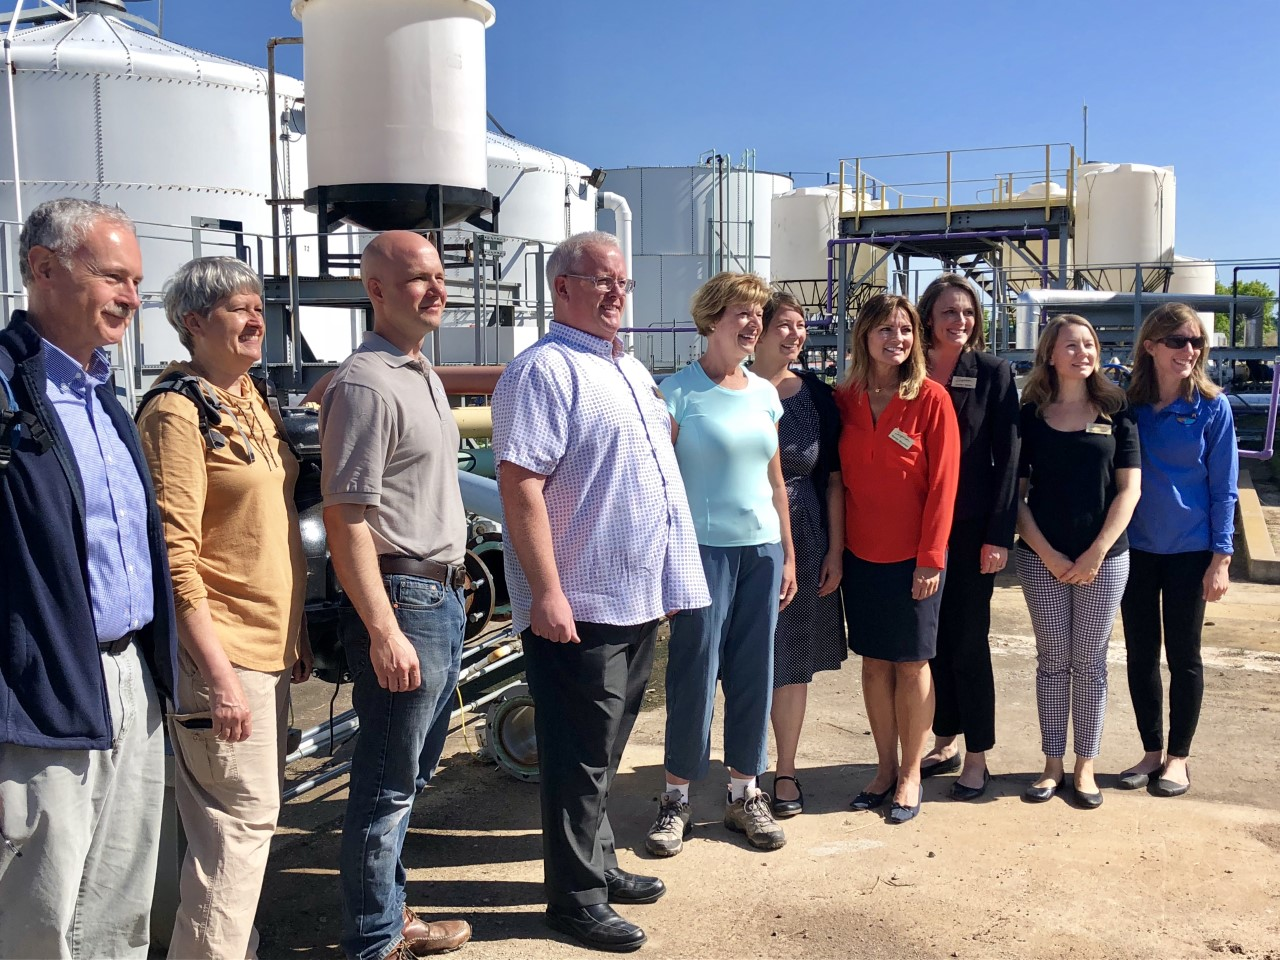 Group gathers at testing facility in Superior